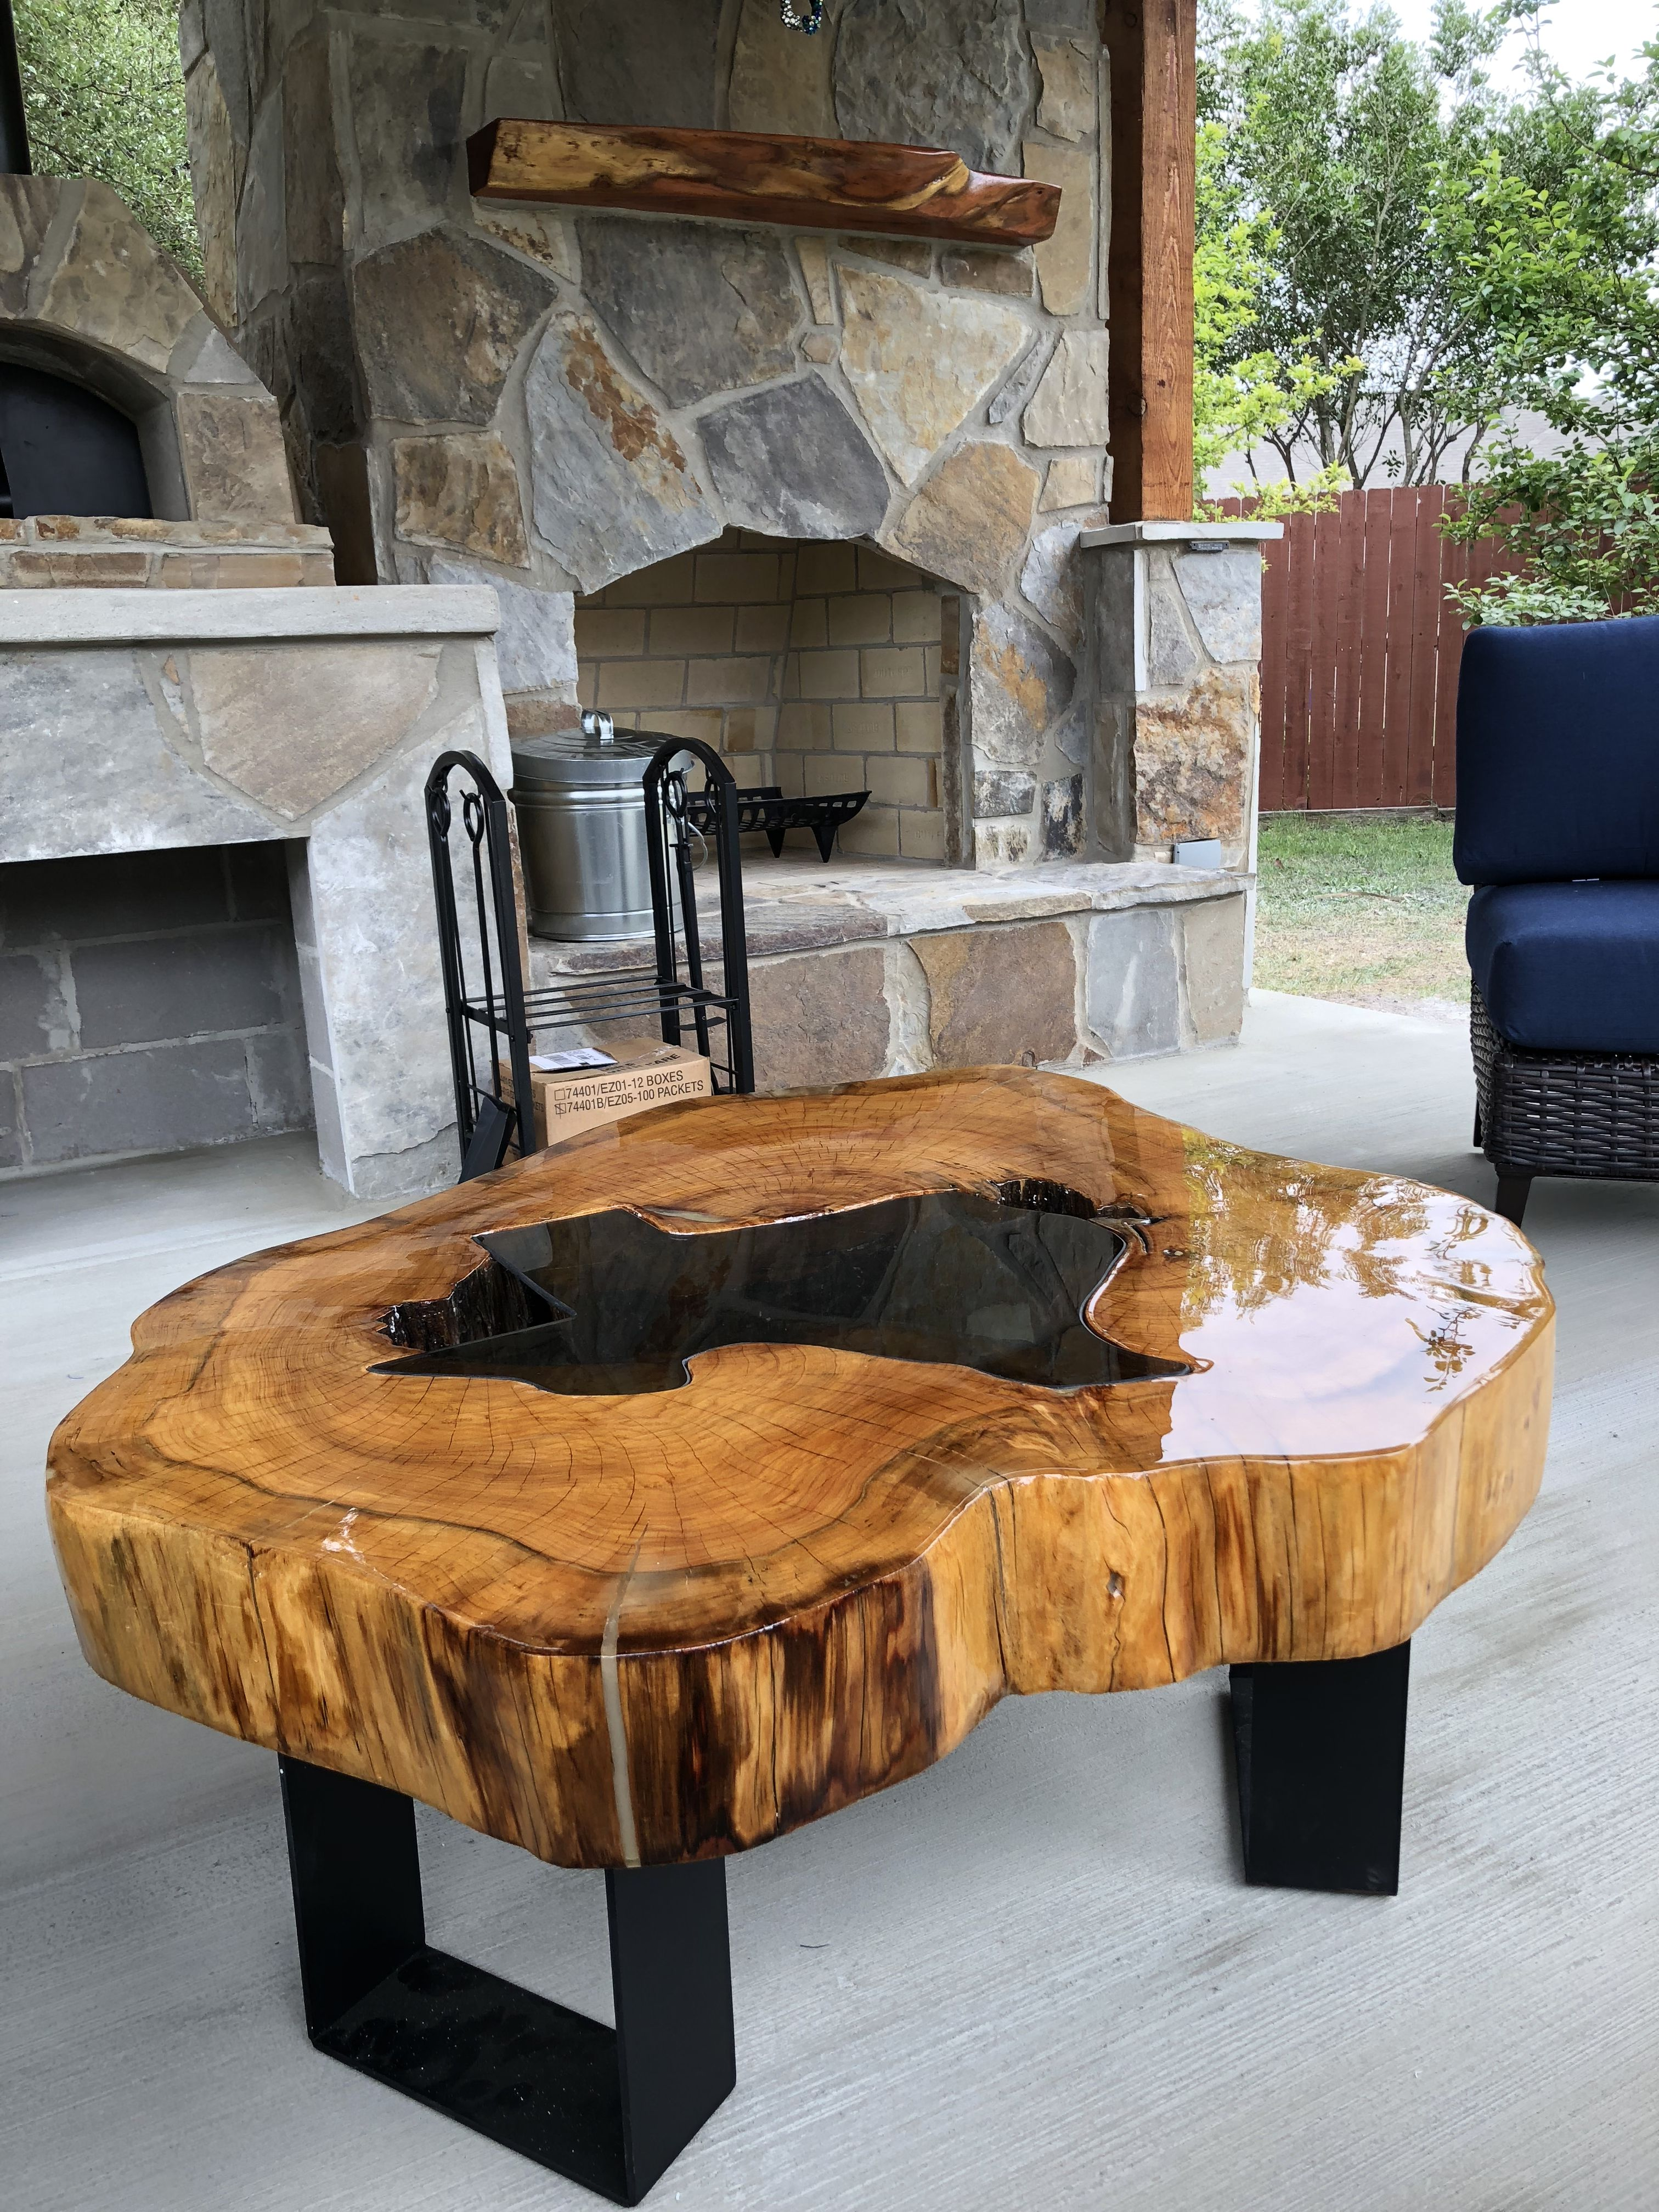 Cypress Round Texas Live Edge Table Epoxy Wood Table Resin Table Wood End Tables [ 4032 x 3024 Pixel ]